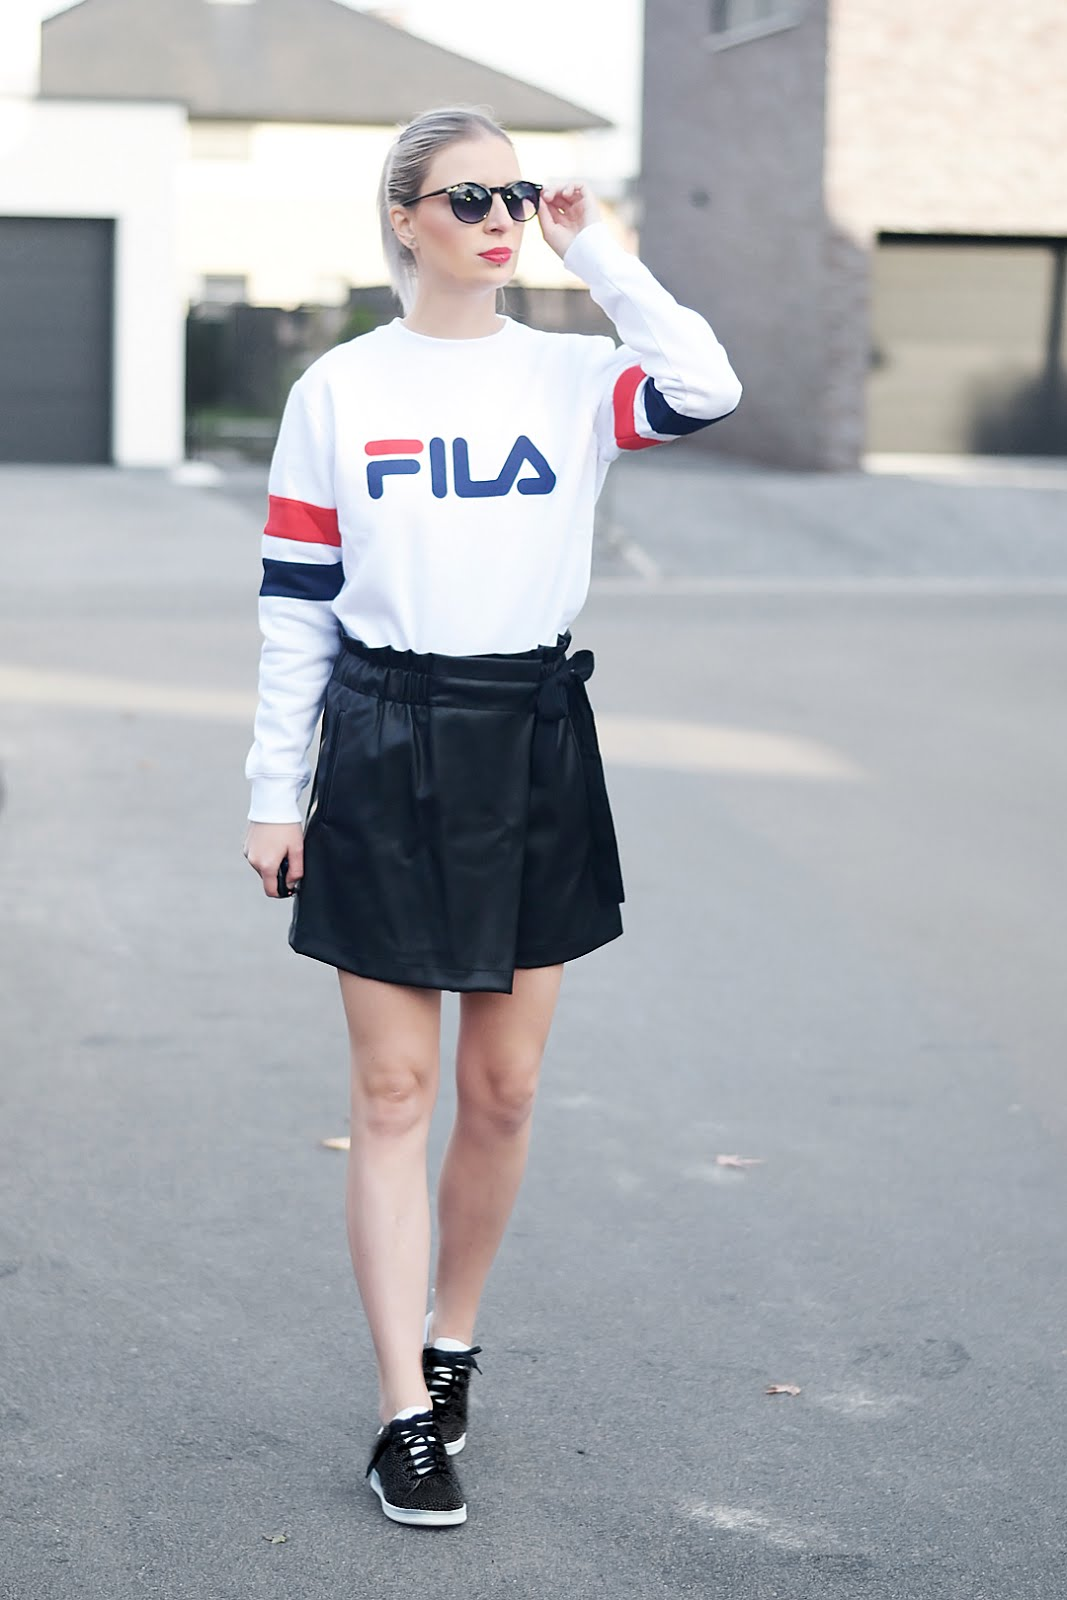 Fila, style guide, jd sports, sweatshirt, zara, skort, fall 2016, maruti footwear